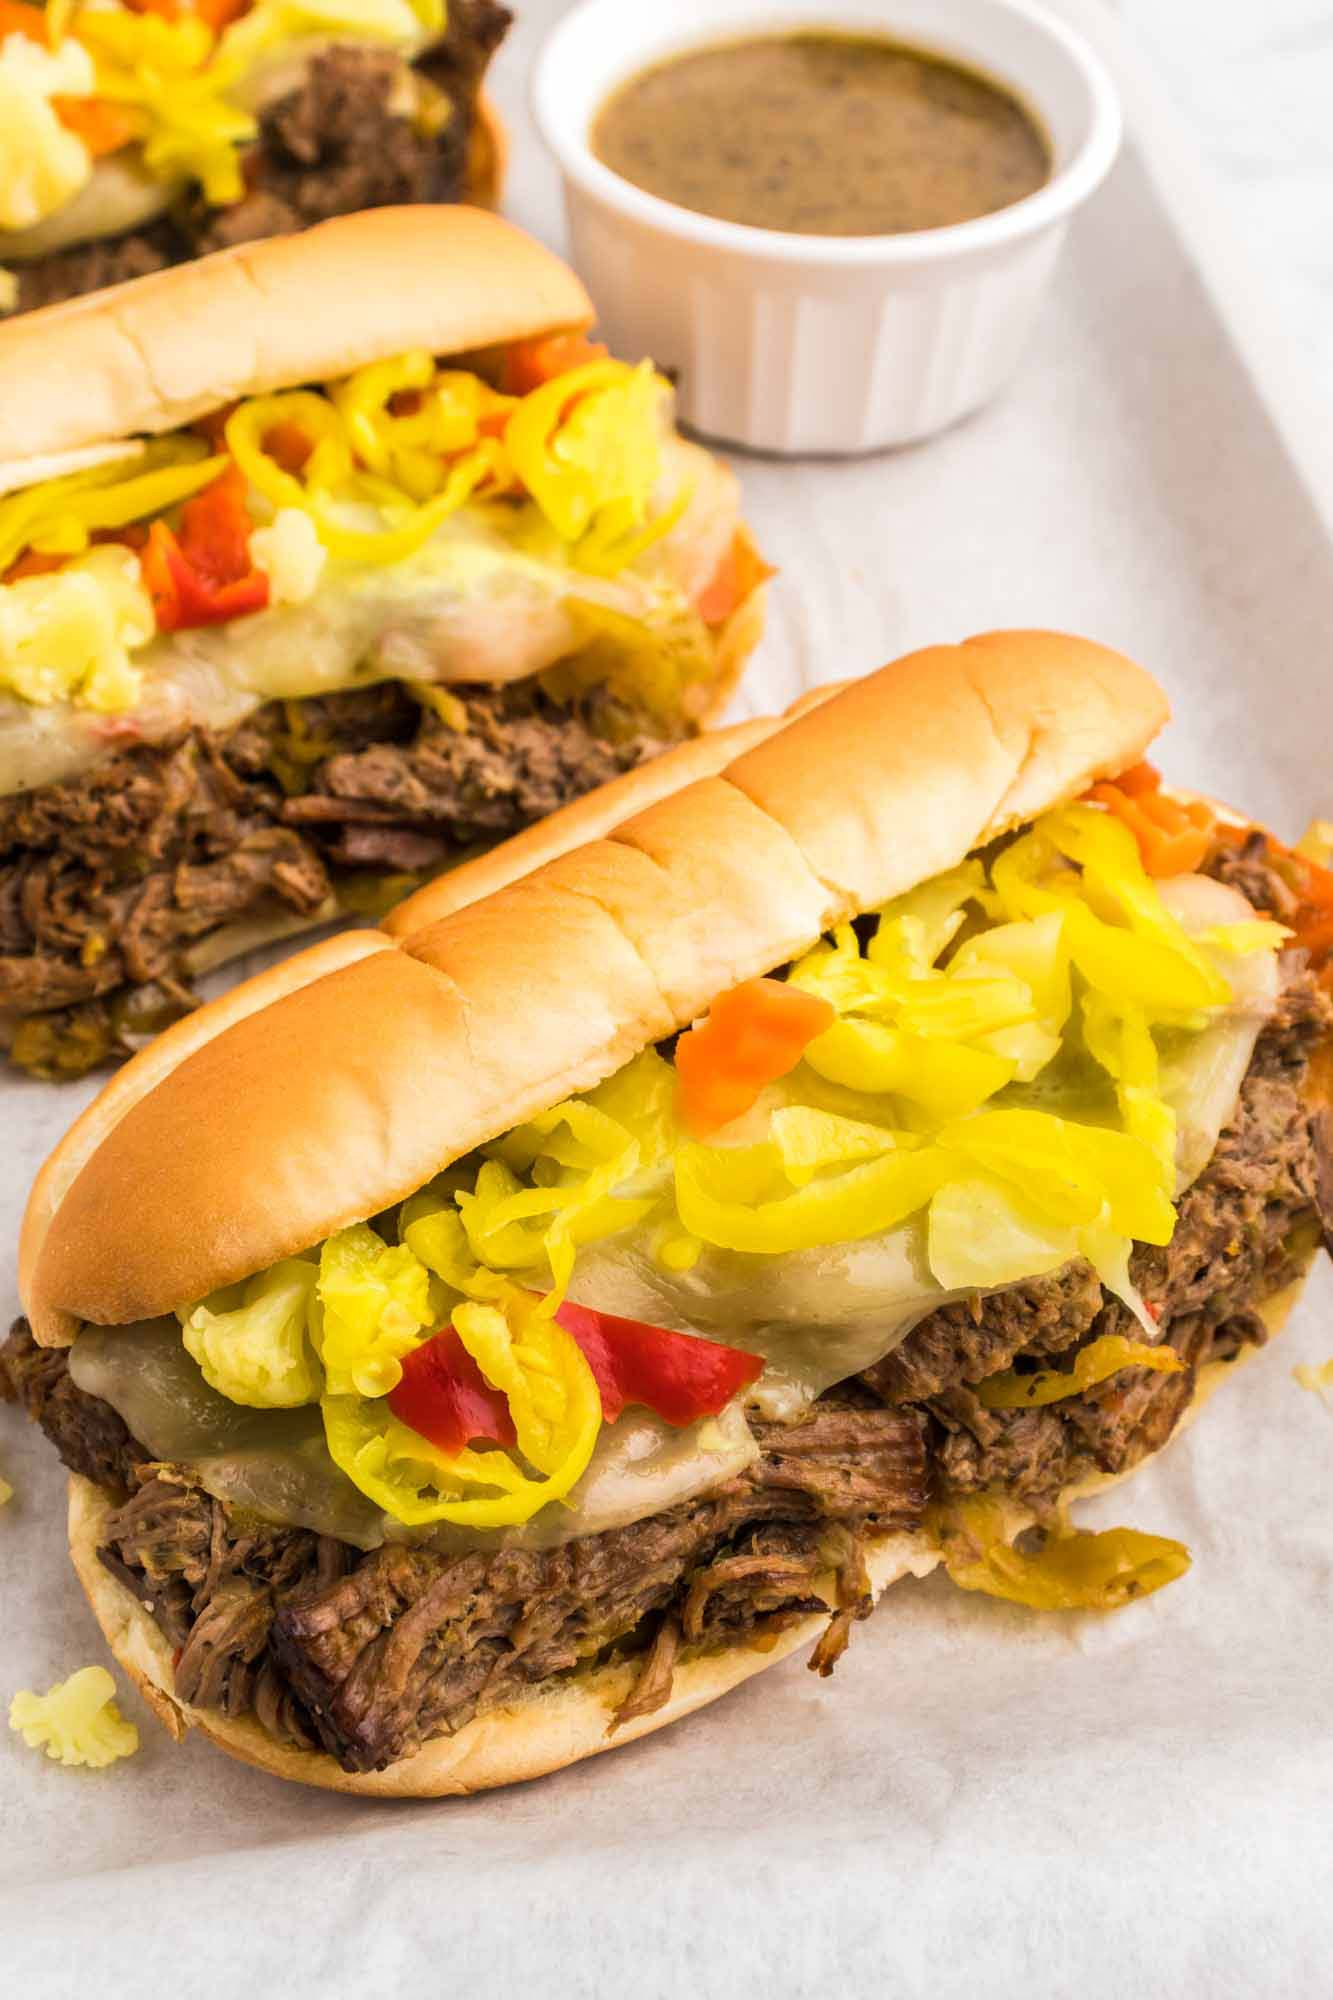 3 Italian beef sandwiches placed on parchment paper, and a little jus in a bowl for dipping.